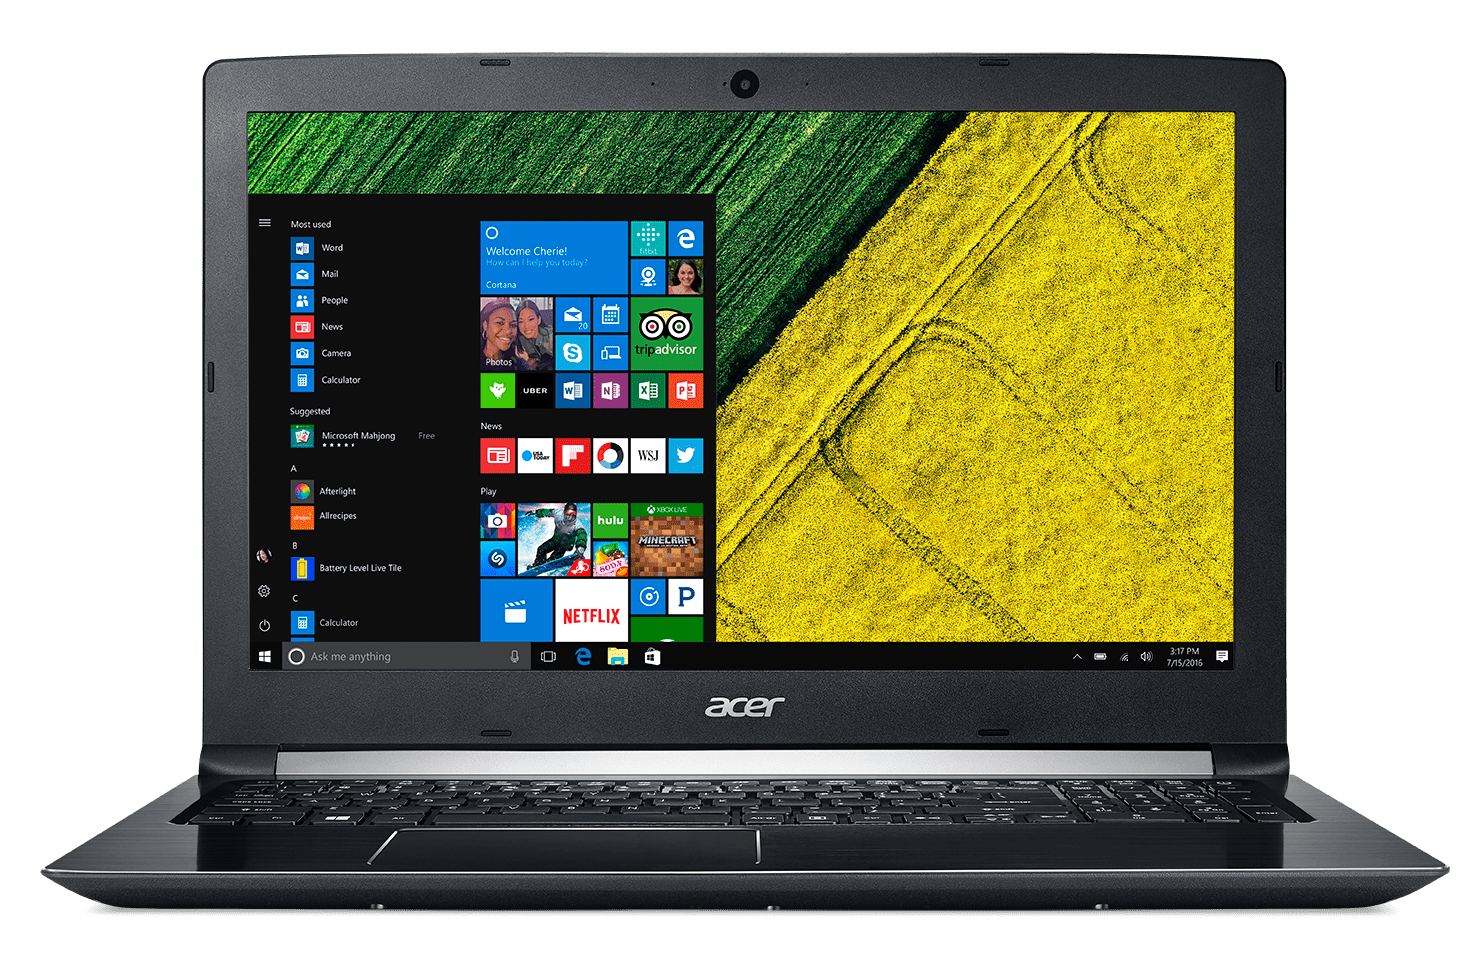 ACER TRAVELMATE 720 SERIES HOTKEY PANEL VIRTUAL DEVICE WINDOWS 8.1 DRIVER DOWNLOAD